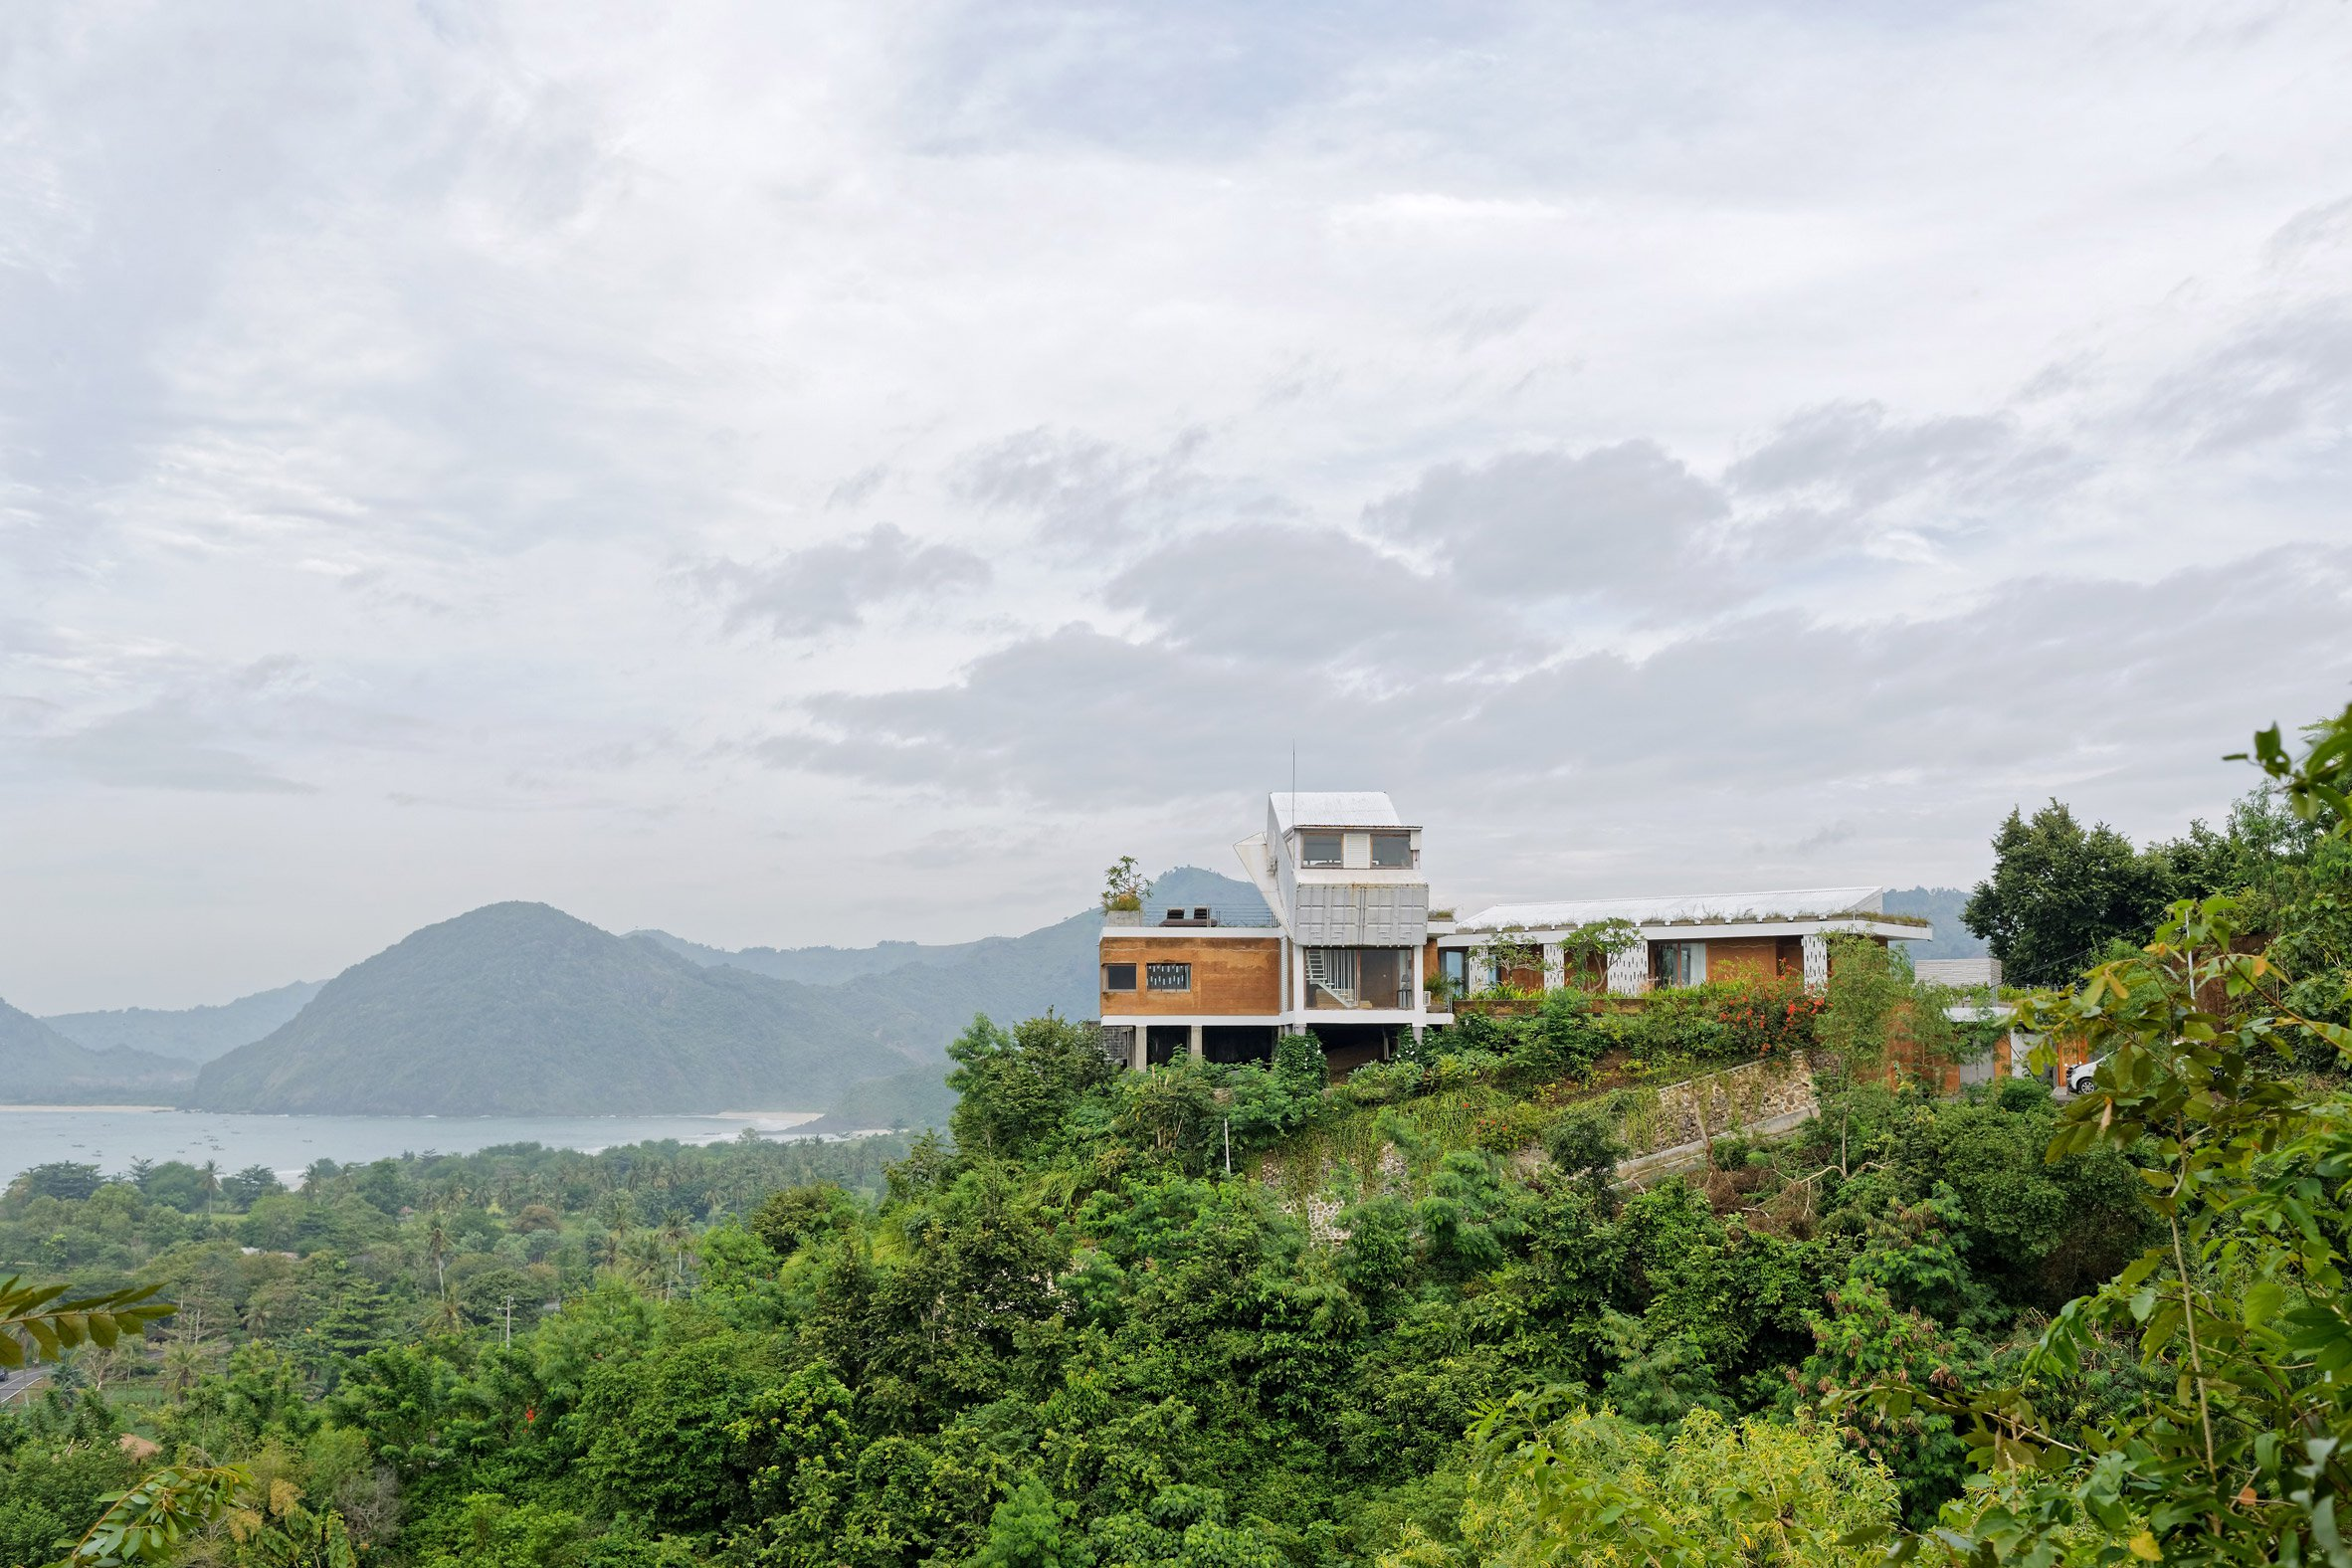 Tilted shipping containers top scenic island home